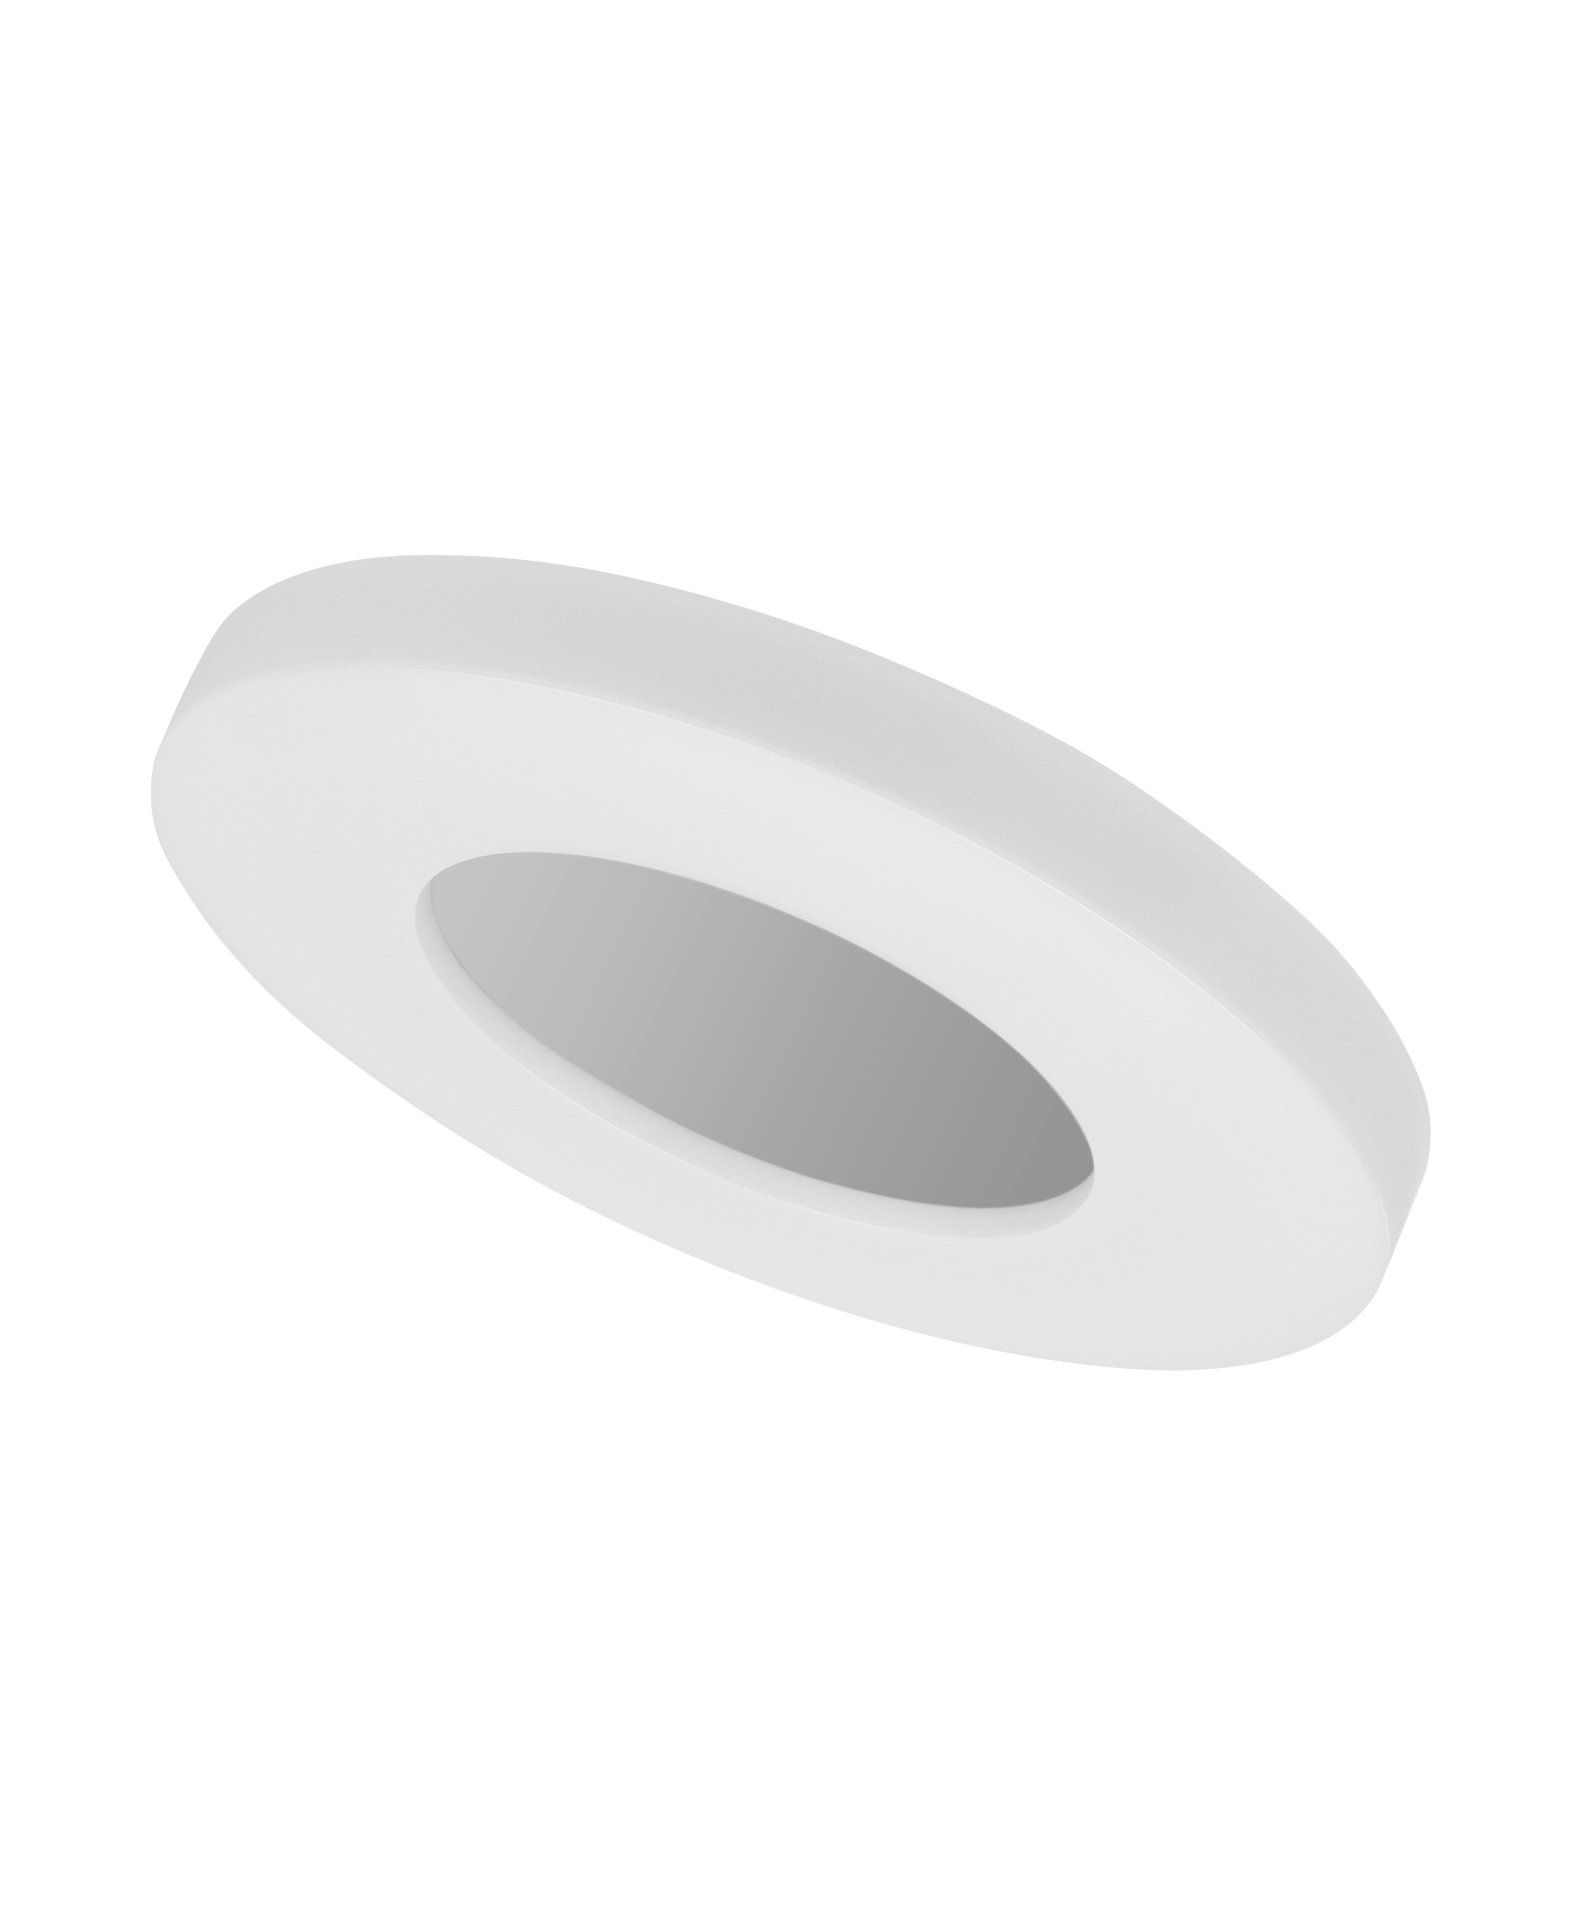 Wall and ceiling luminaires